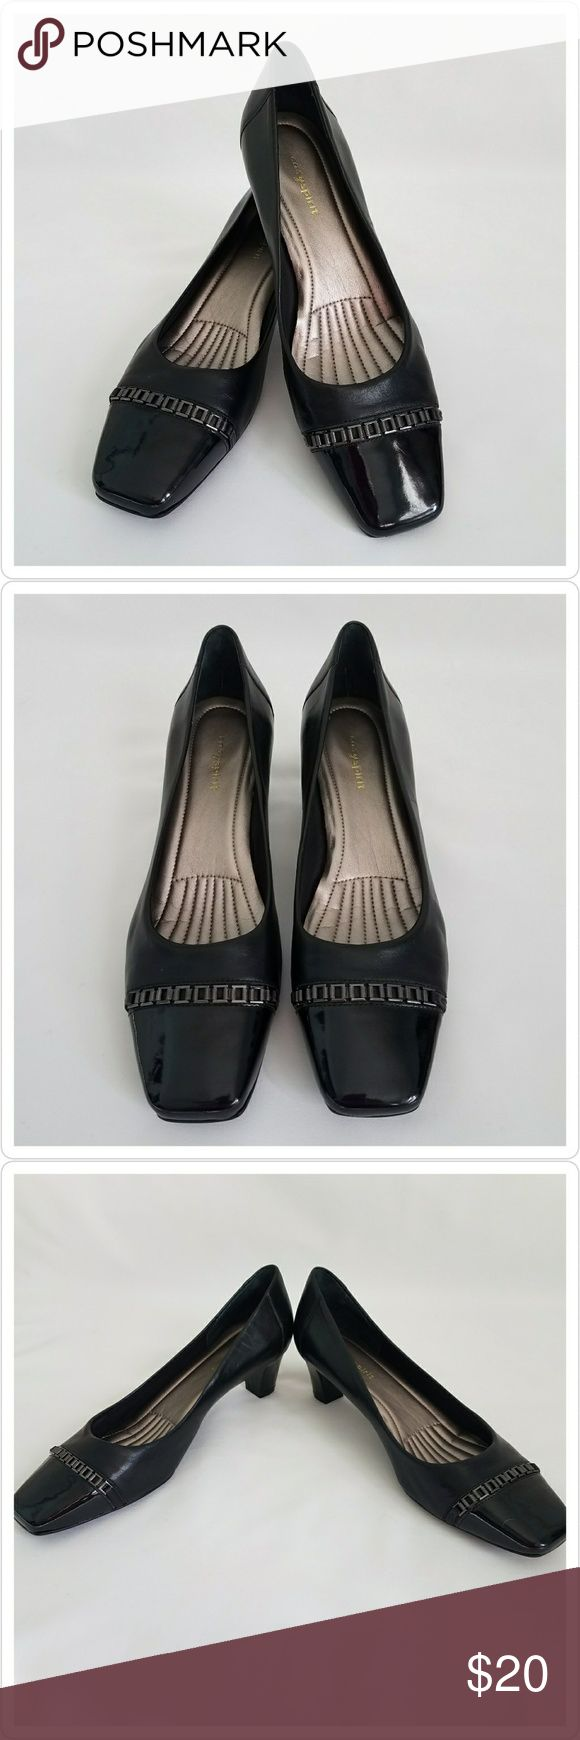 """Easy Spirit Black Leather Square Toe Career Heels Easy Spirit Black Career Heels Condition: Excellent  Brand:  Easy Spirit Style: Square Toe Heels Color: Black Material: Leather Hardware: Brushed Nickel  Size: 9-1/2 M Narrow, standard, wide: Standard  Heel Height: 2"""" Heels: Insole 11"""" Special accents: Patent Leather toe with nickel embellishments  Issues: None  Made in China  Please let me know if you have any questions. Thank you for looking! XoxoxoxoEasy Easy Spirit Shoes Heels"""